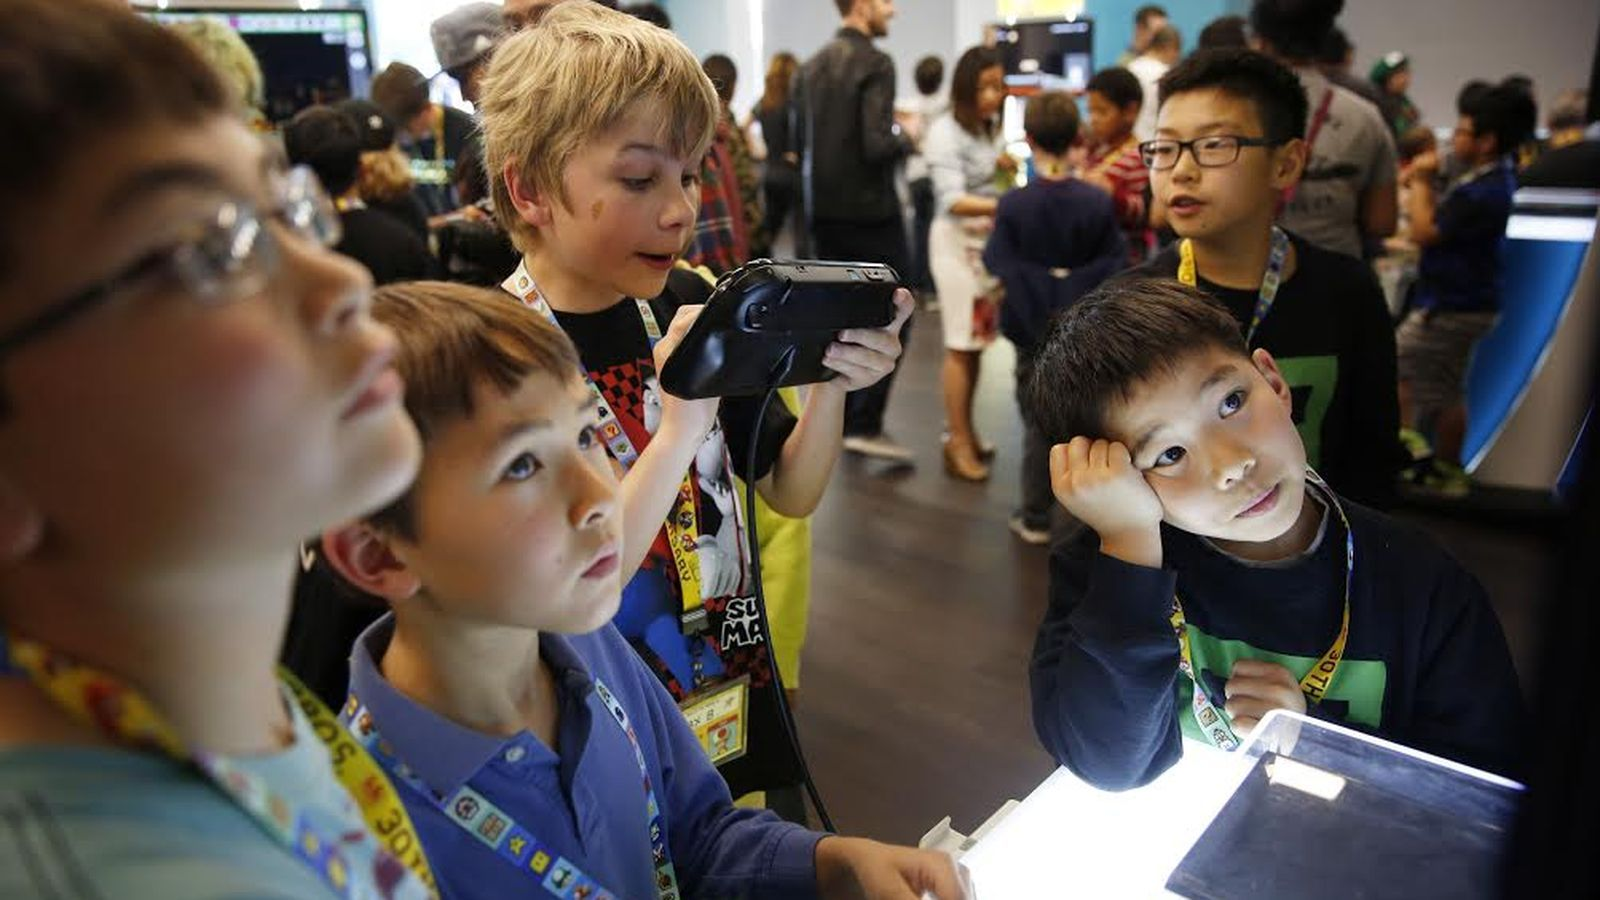 Nintendo partners with SF public library to teach kids about game design | The Verge